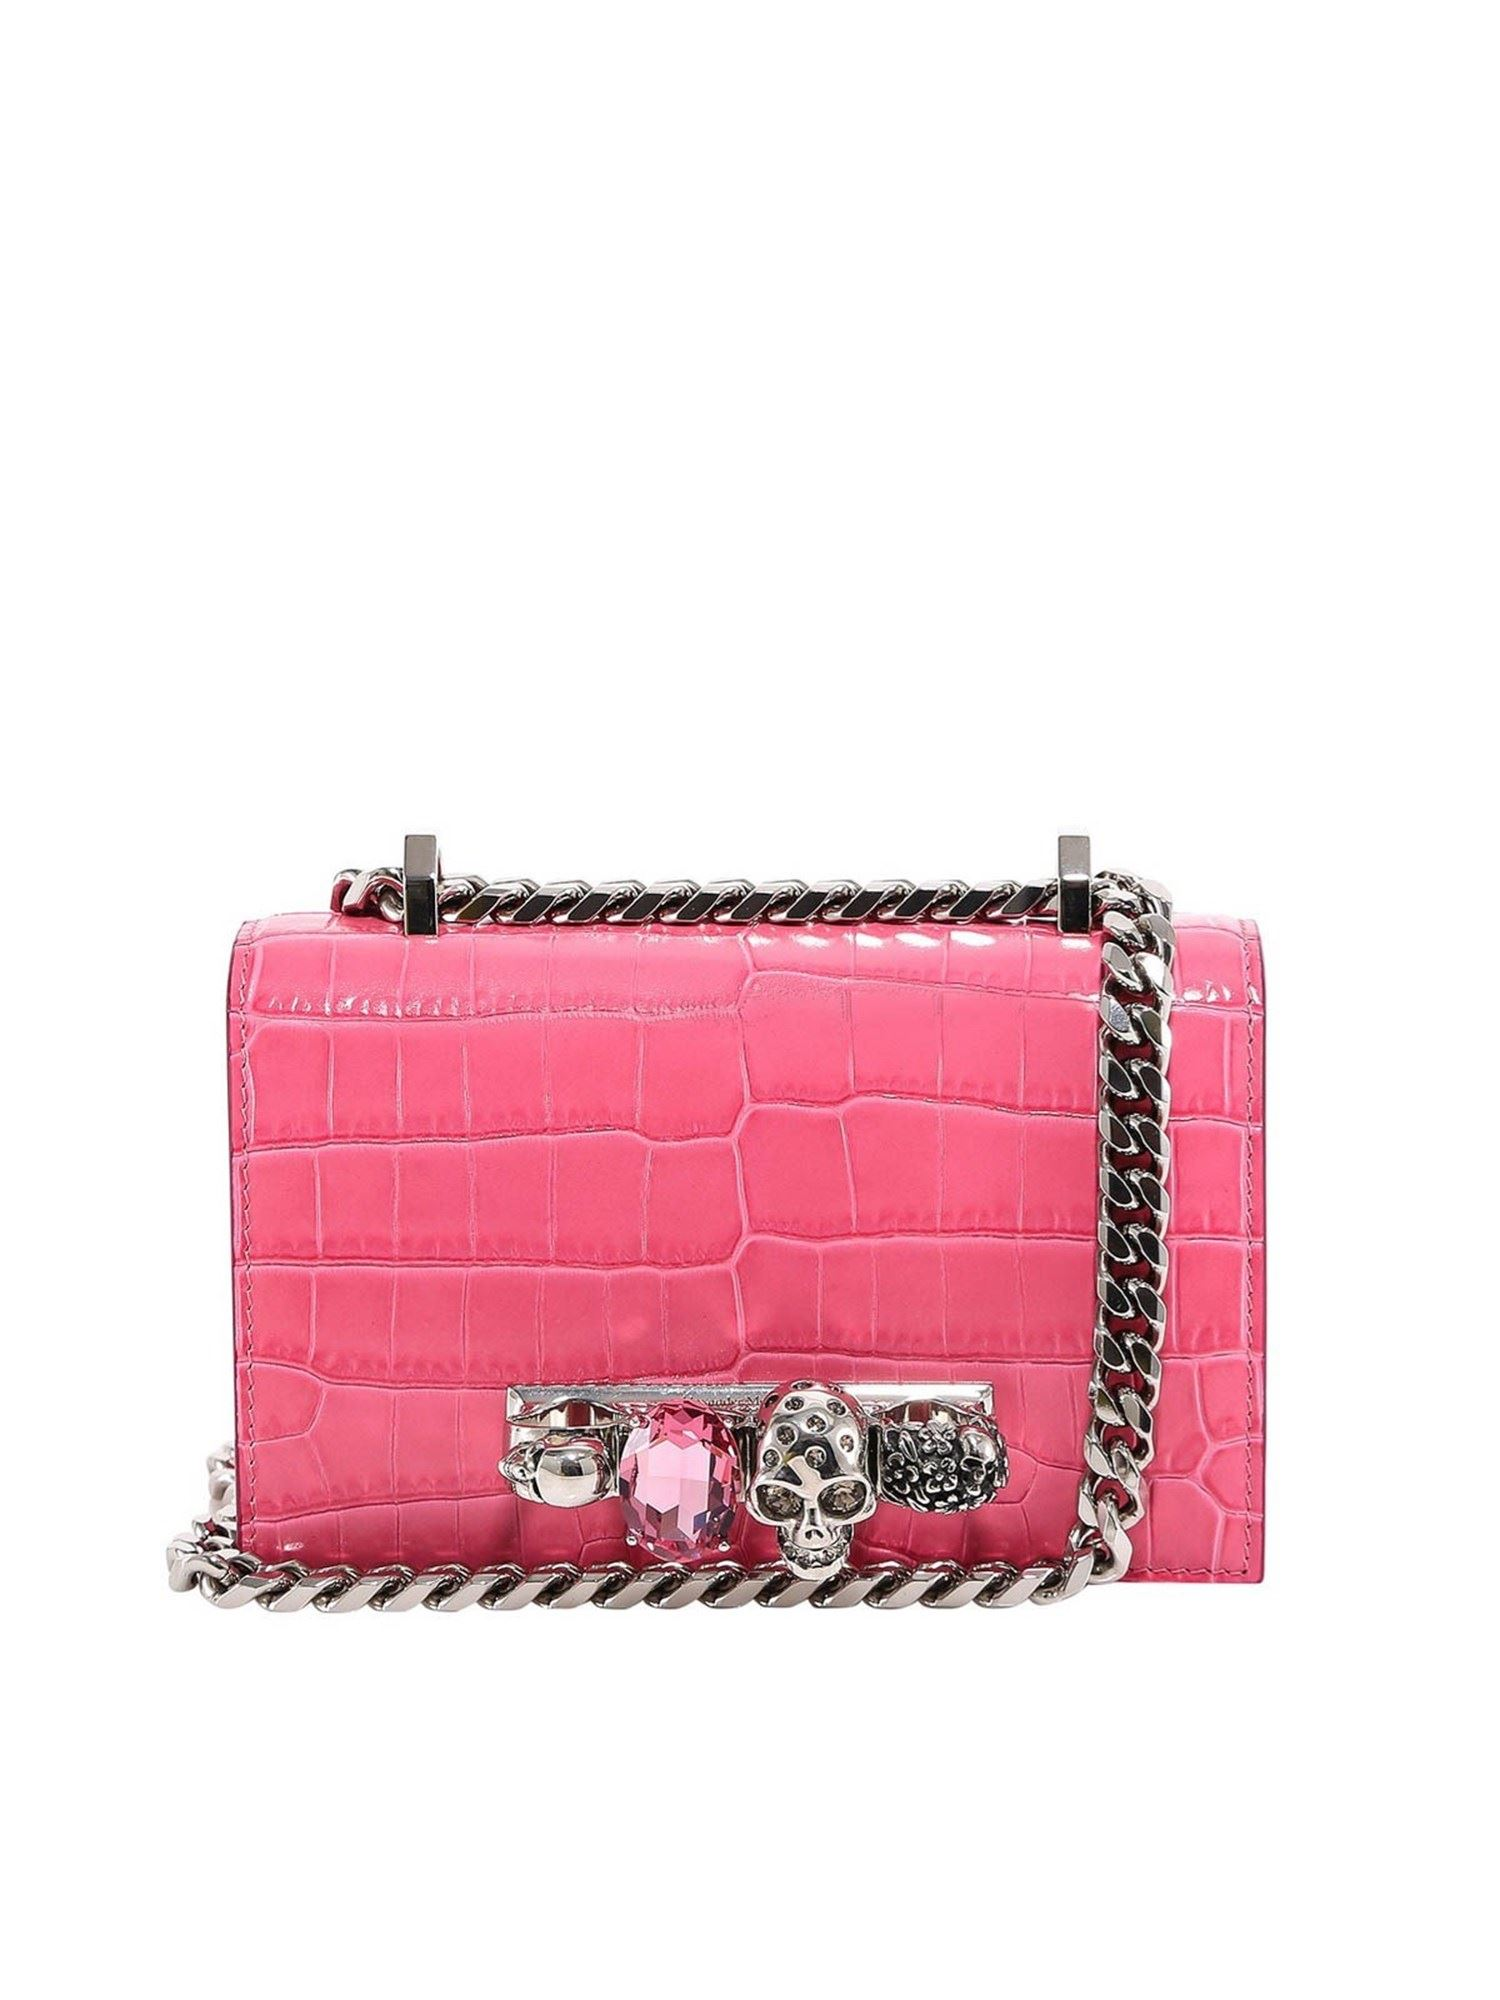 Alexander Mcqueen ALEXANDER MCQUEEN CROCO PRINT LEATHER CROSS BODY BAG IN PINK